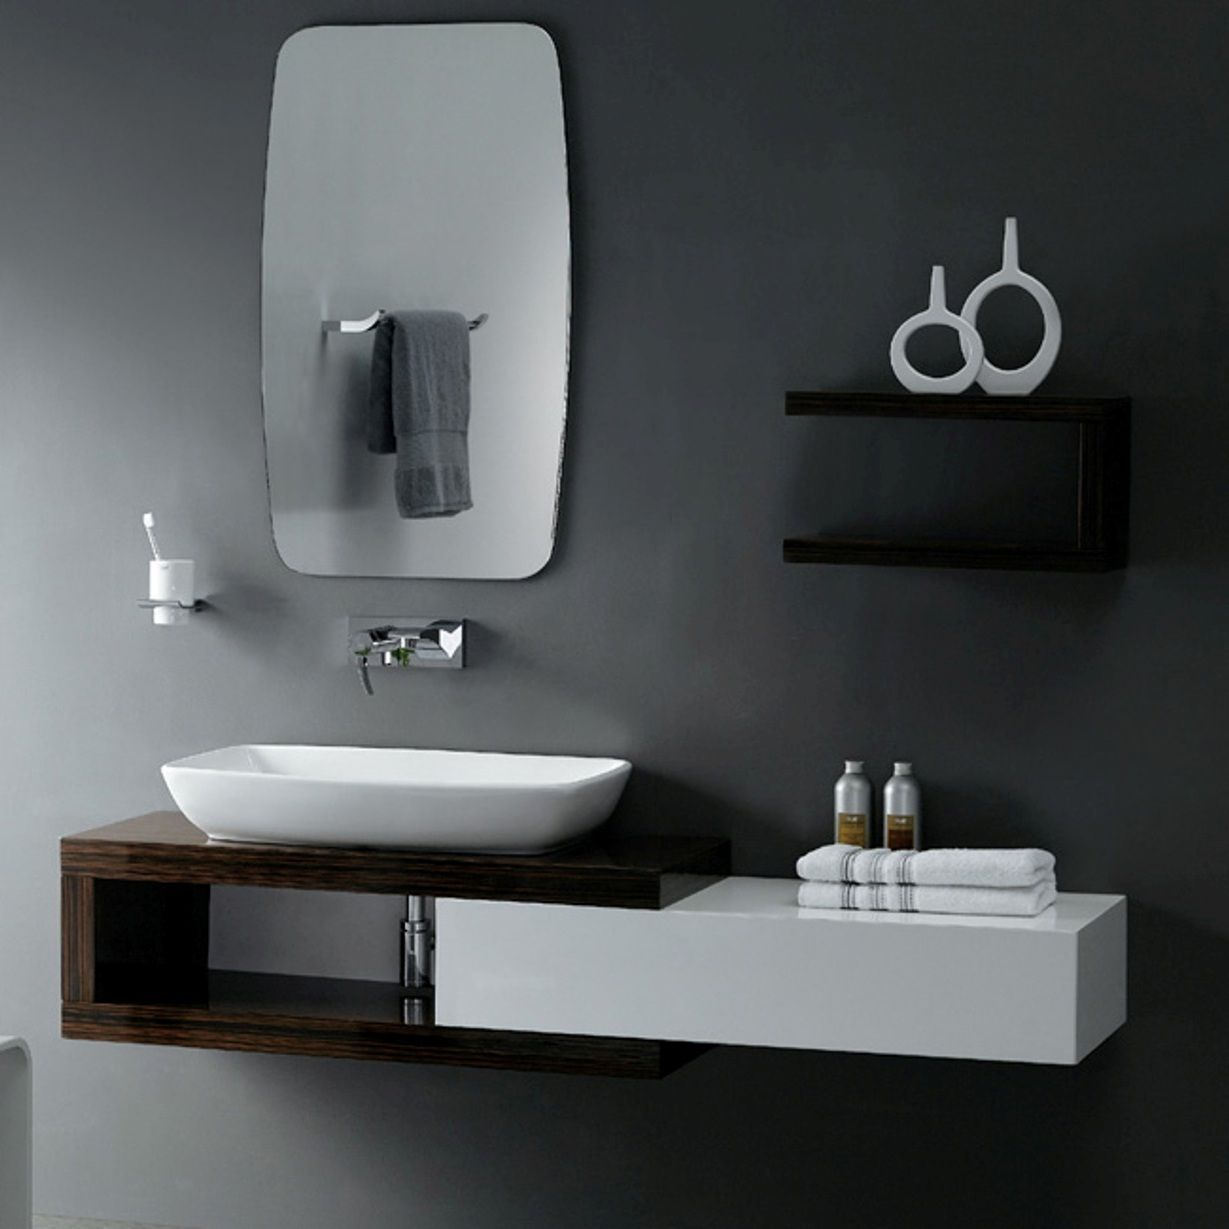 Bathroom  The Modern Bathroom Vanity  Cool Black And White Adorable Modern Bathroom Vanity Review